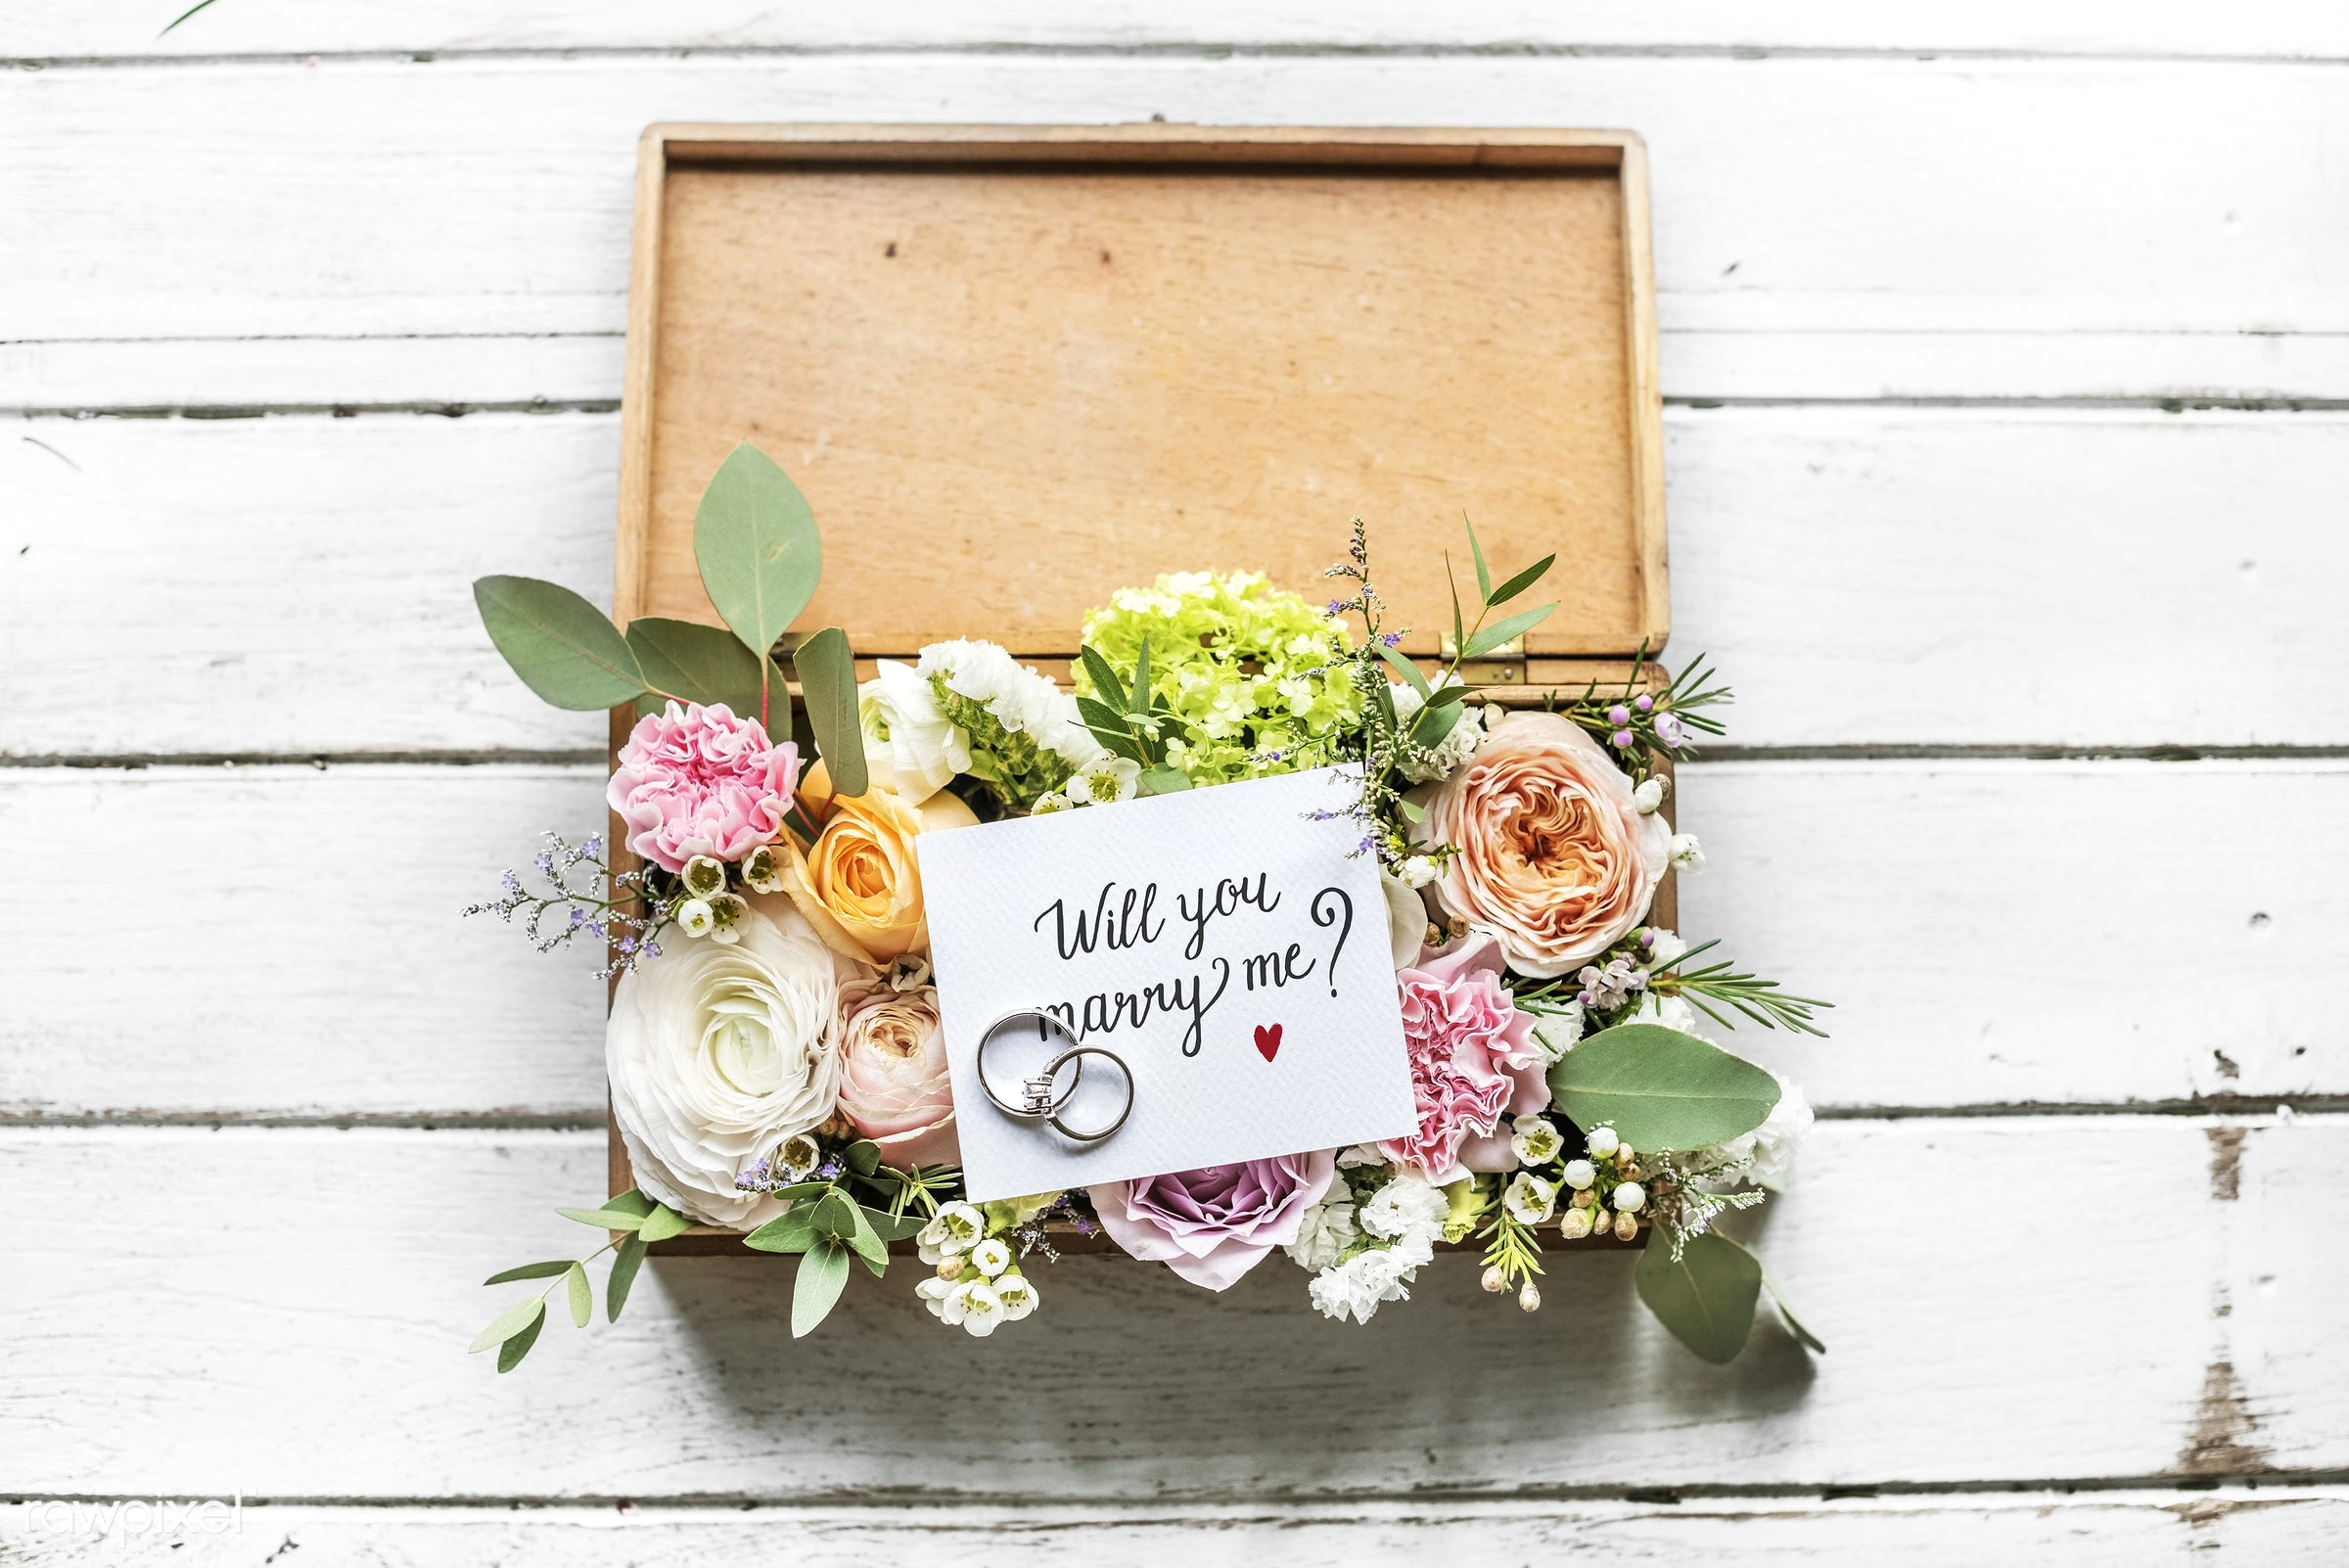 expression, bouquet, nobody, smitten, together, love, cherish, propose, intimate, lifestyle, card, bush, rings, flowers,...